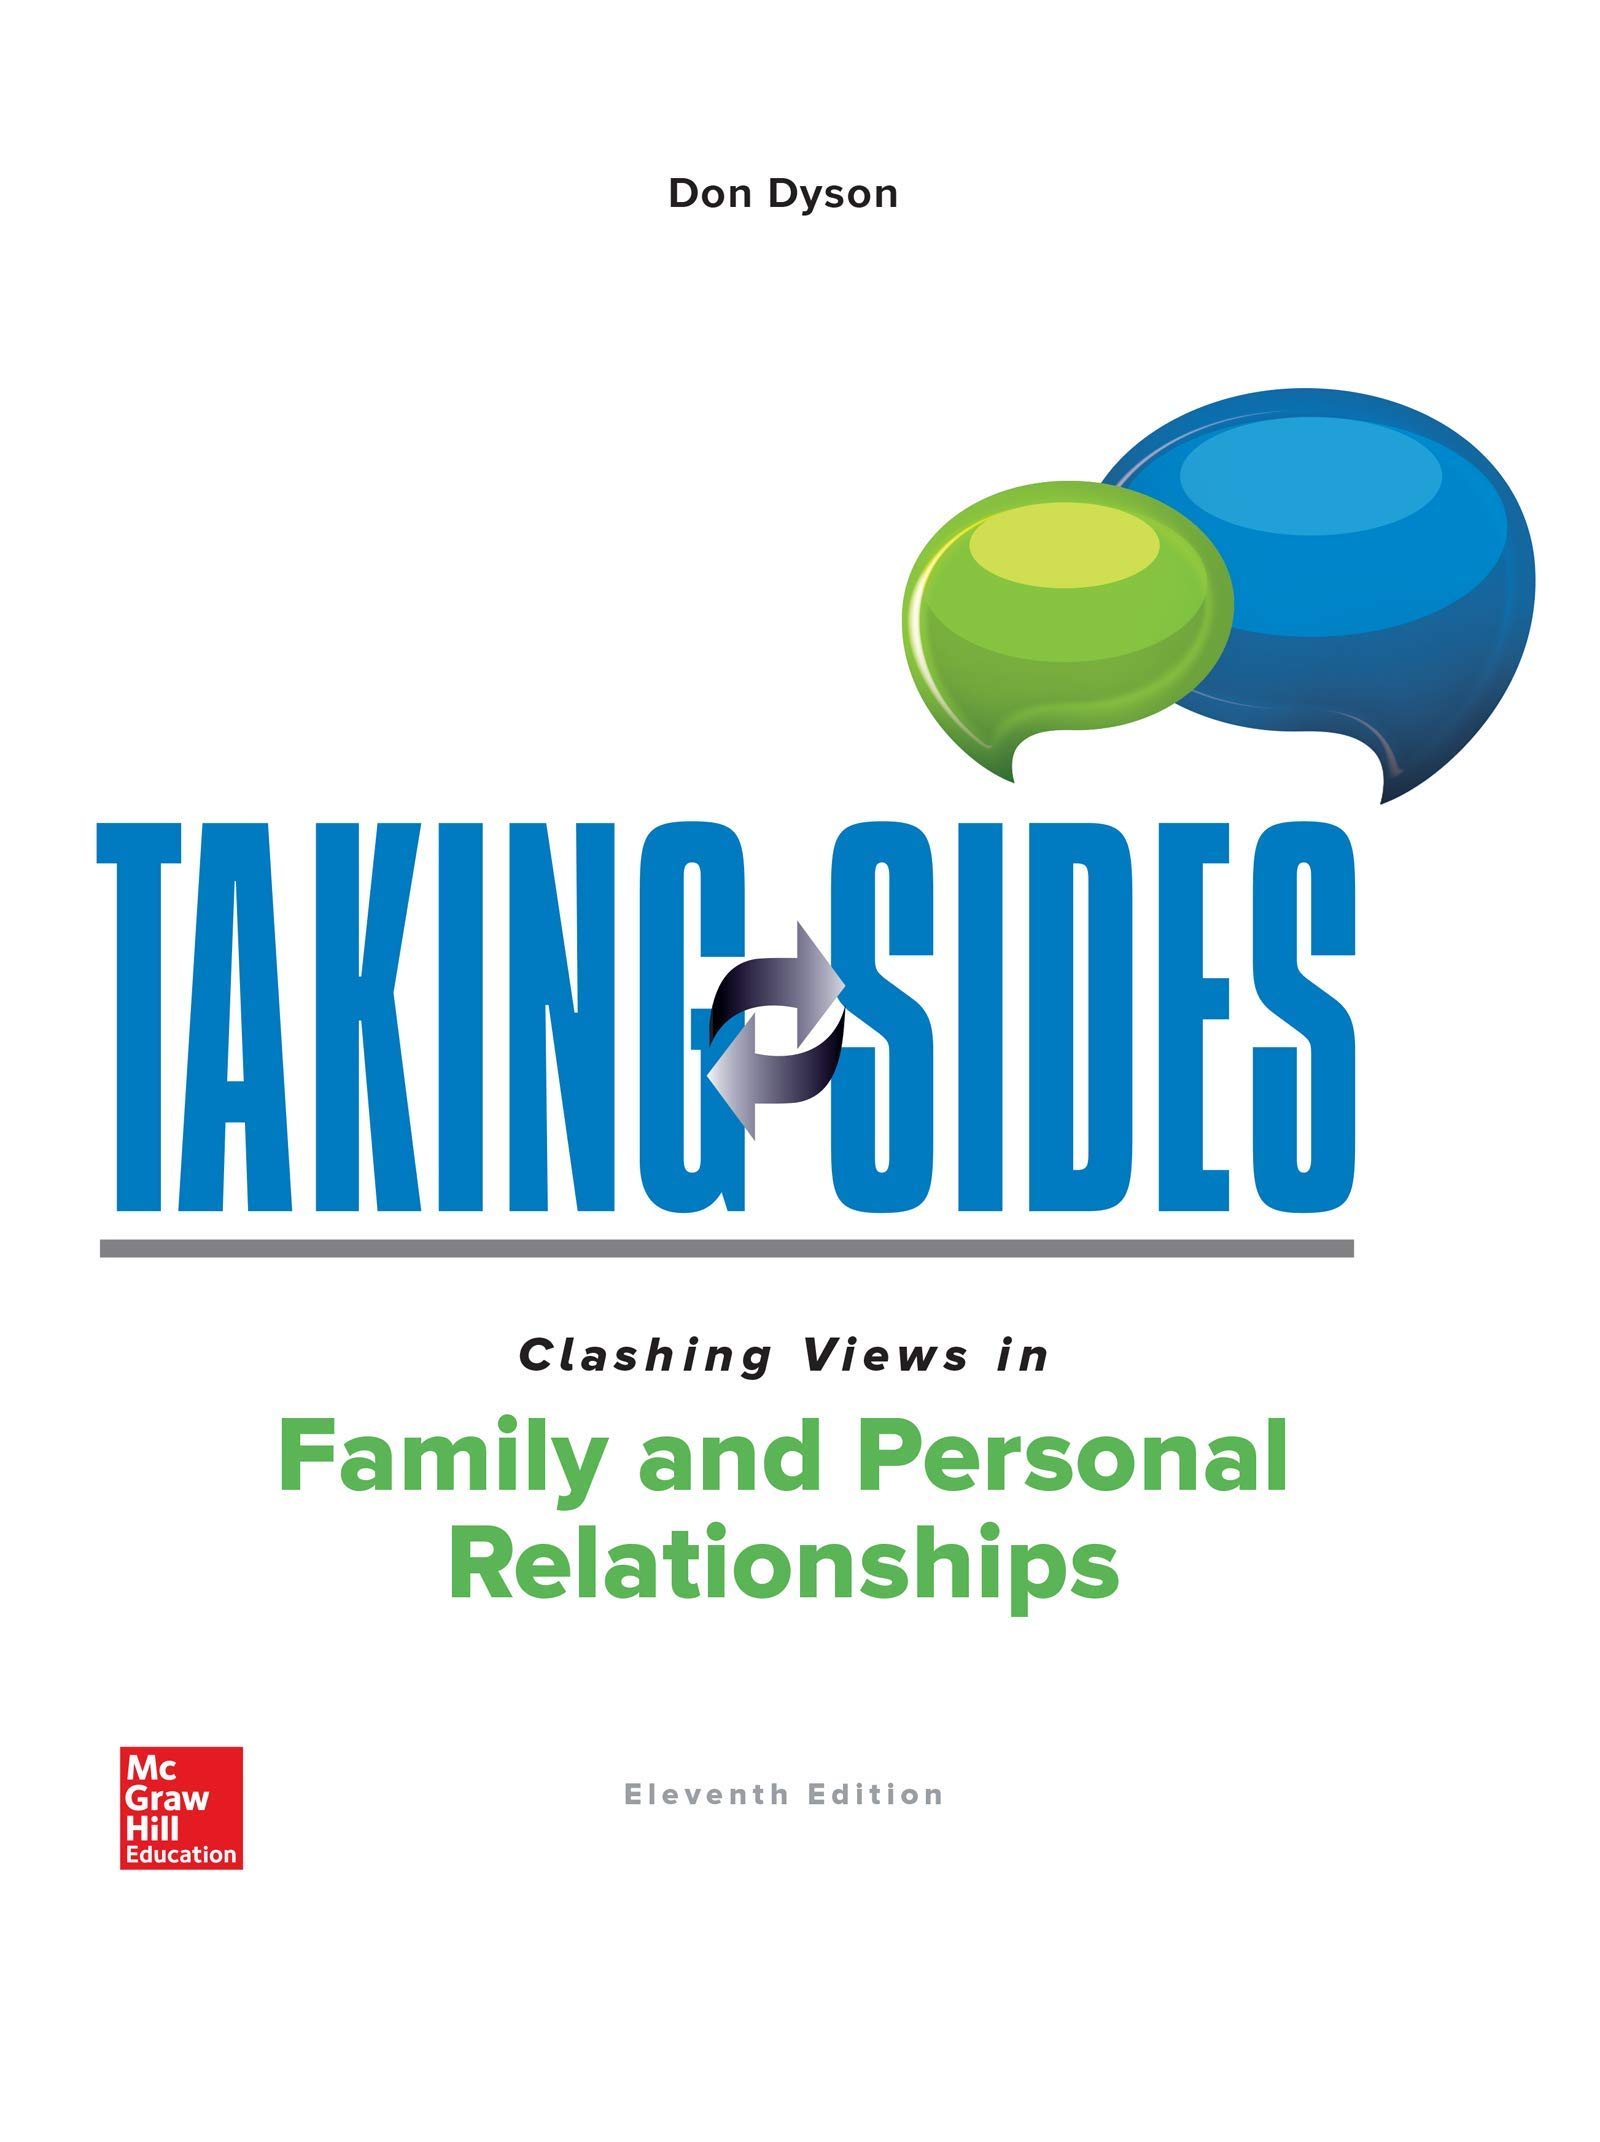 Taking Sides: Clashing Views in Family and Personal Relationships by McGraw-Hill Education